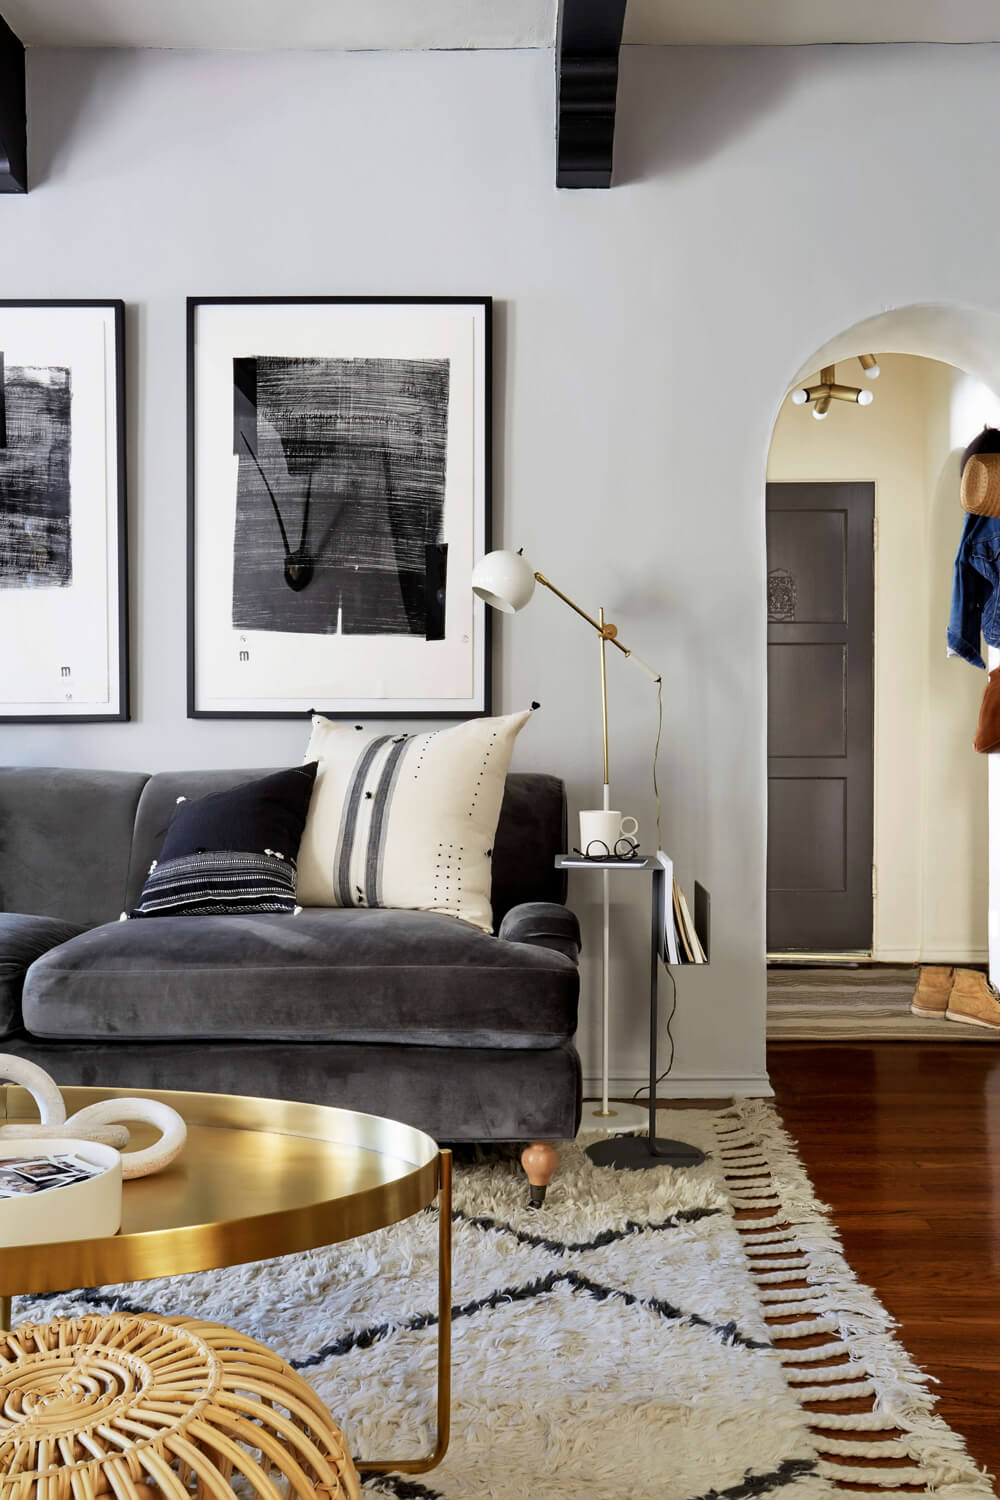 accent tables under emily henderson styling bedside table small half circle industrial hairpin legs high behind couch black gloss cube side huge outdoor umbrella hallway lamp hot